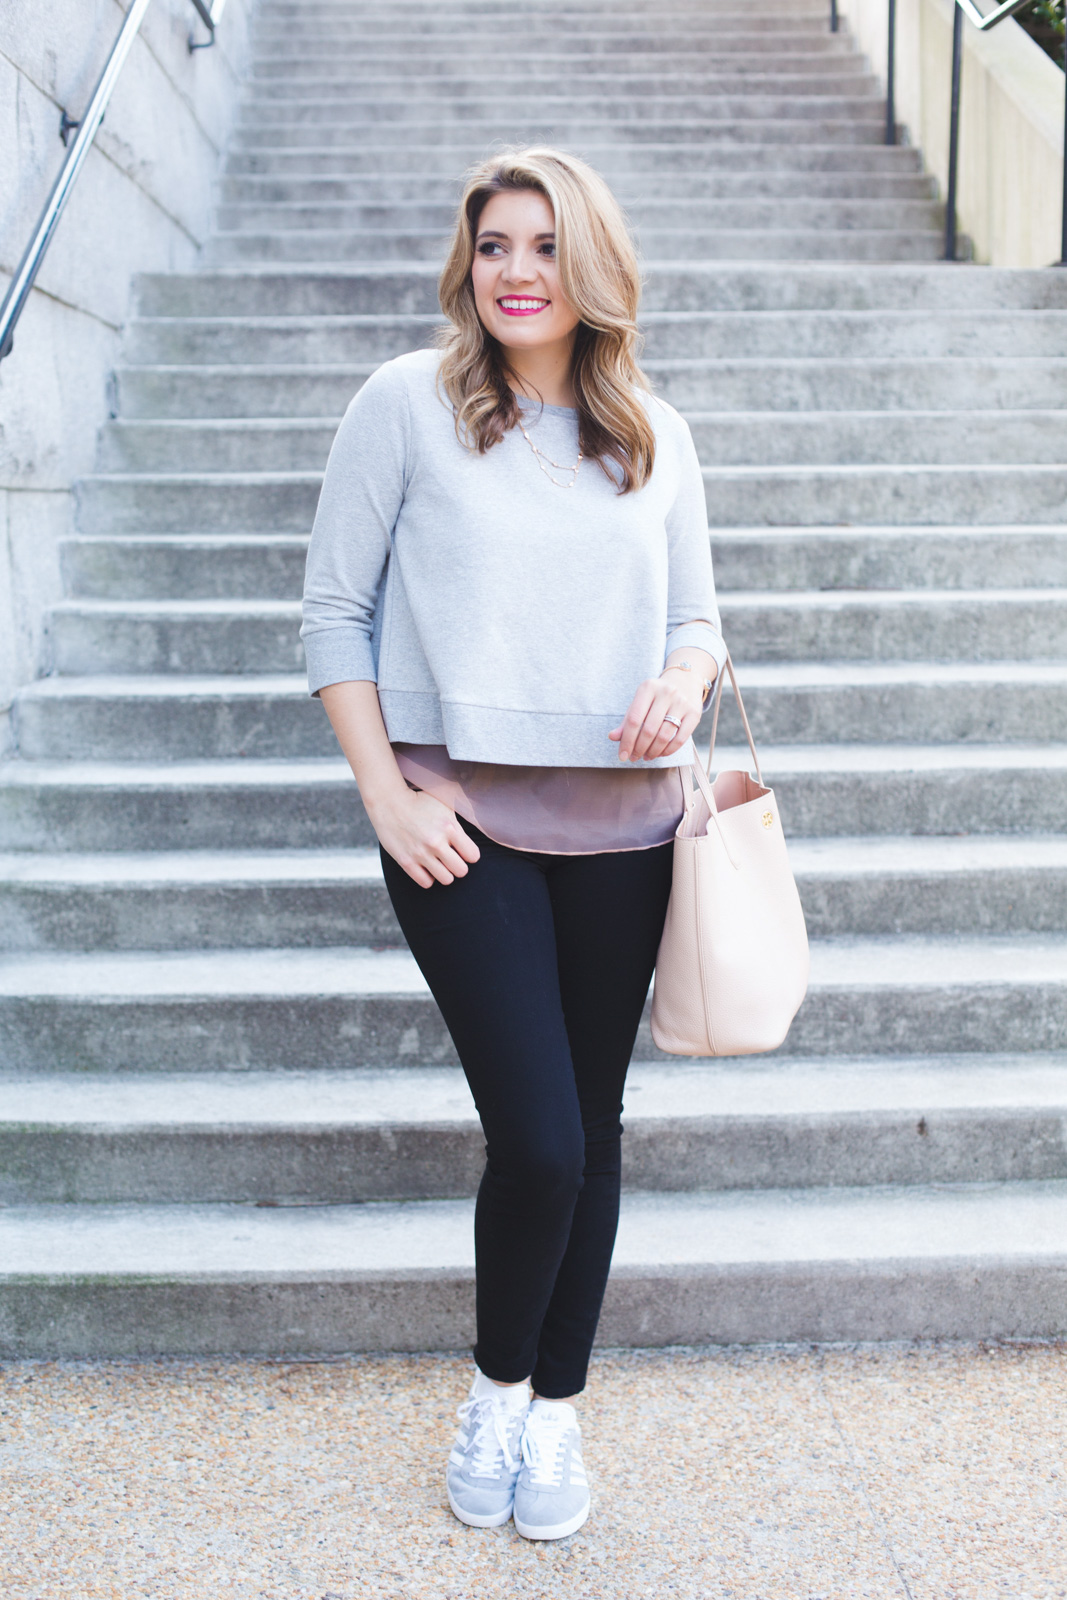 spring weekend casual outfit. Click through for more casual Spring outfits or to shop this look! www.bylaurenm.com